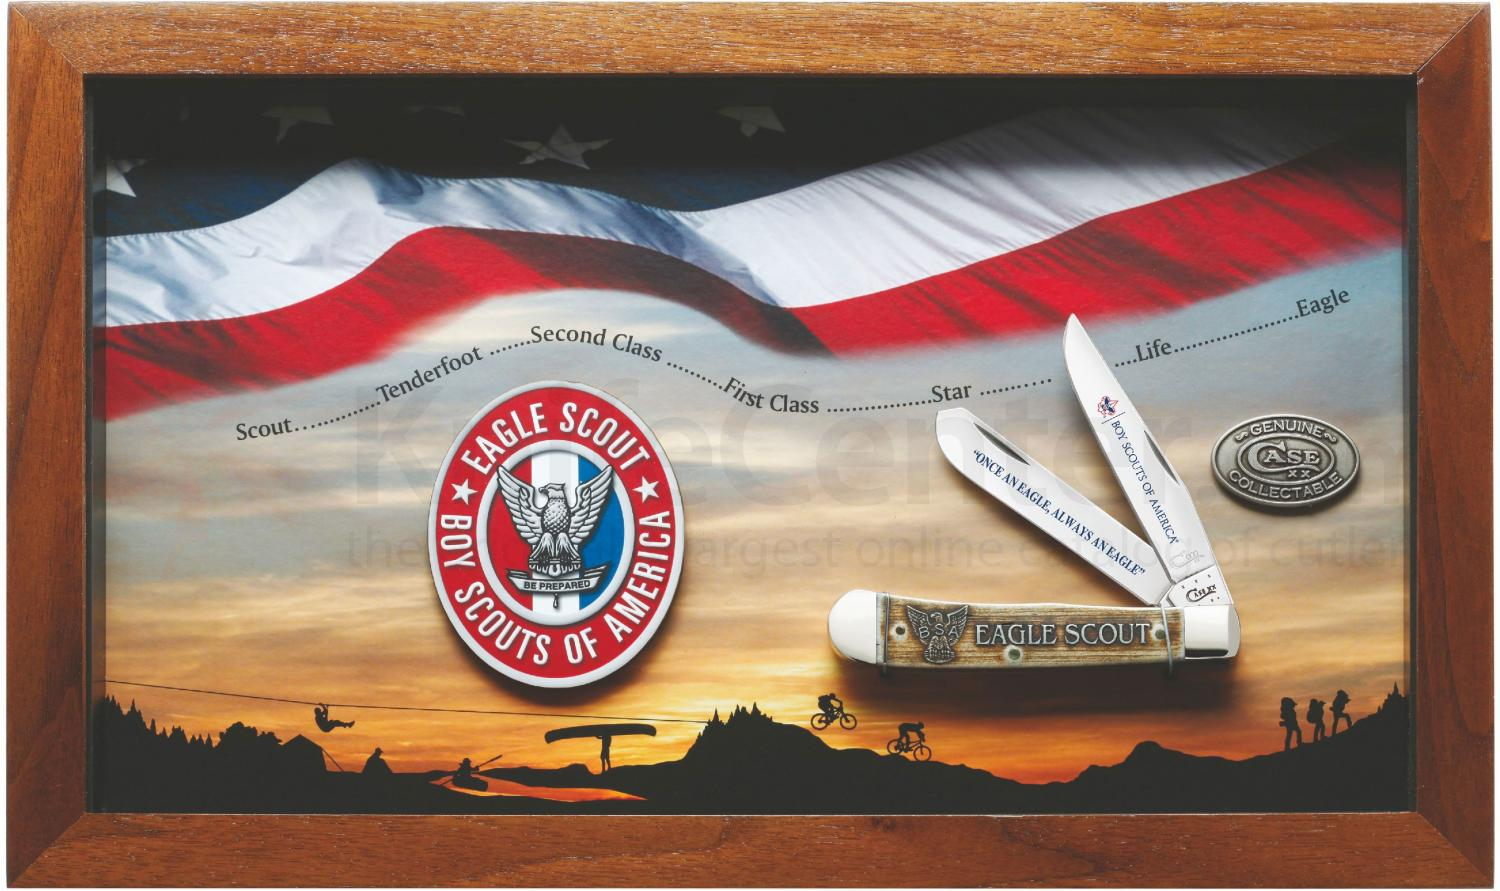 Case Boy Scouts Of America Jigged Dark Red Bone Eagle Scout Commemorative Trer With Display